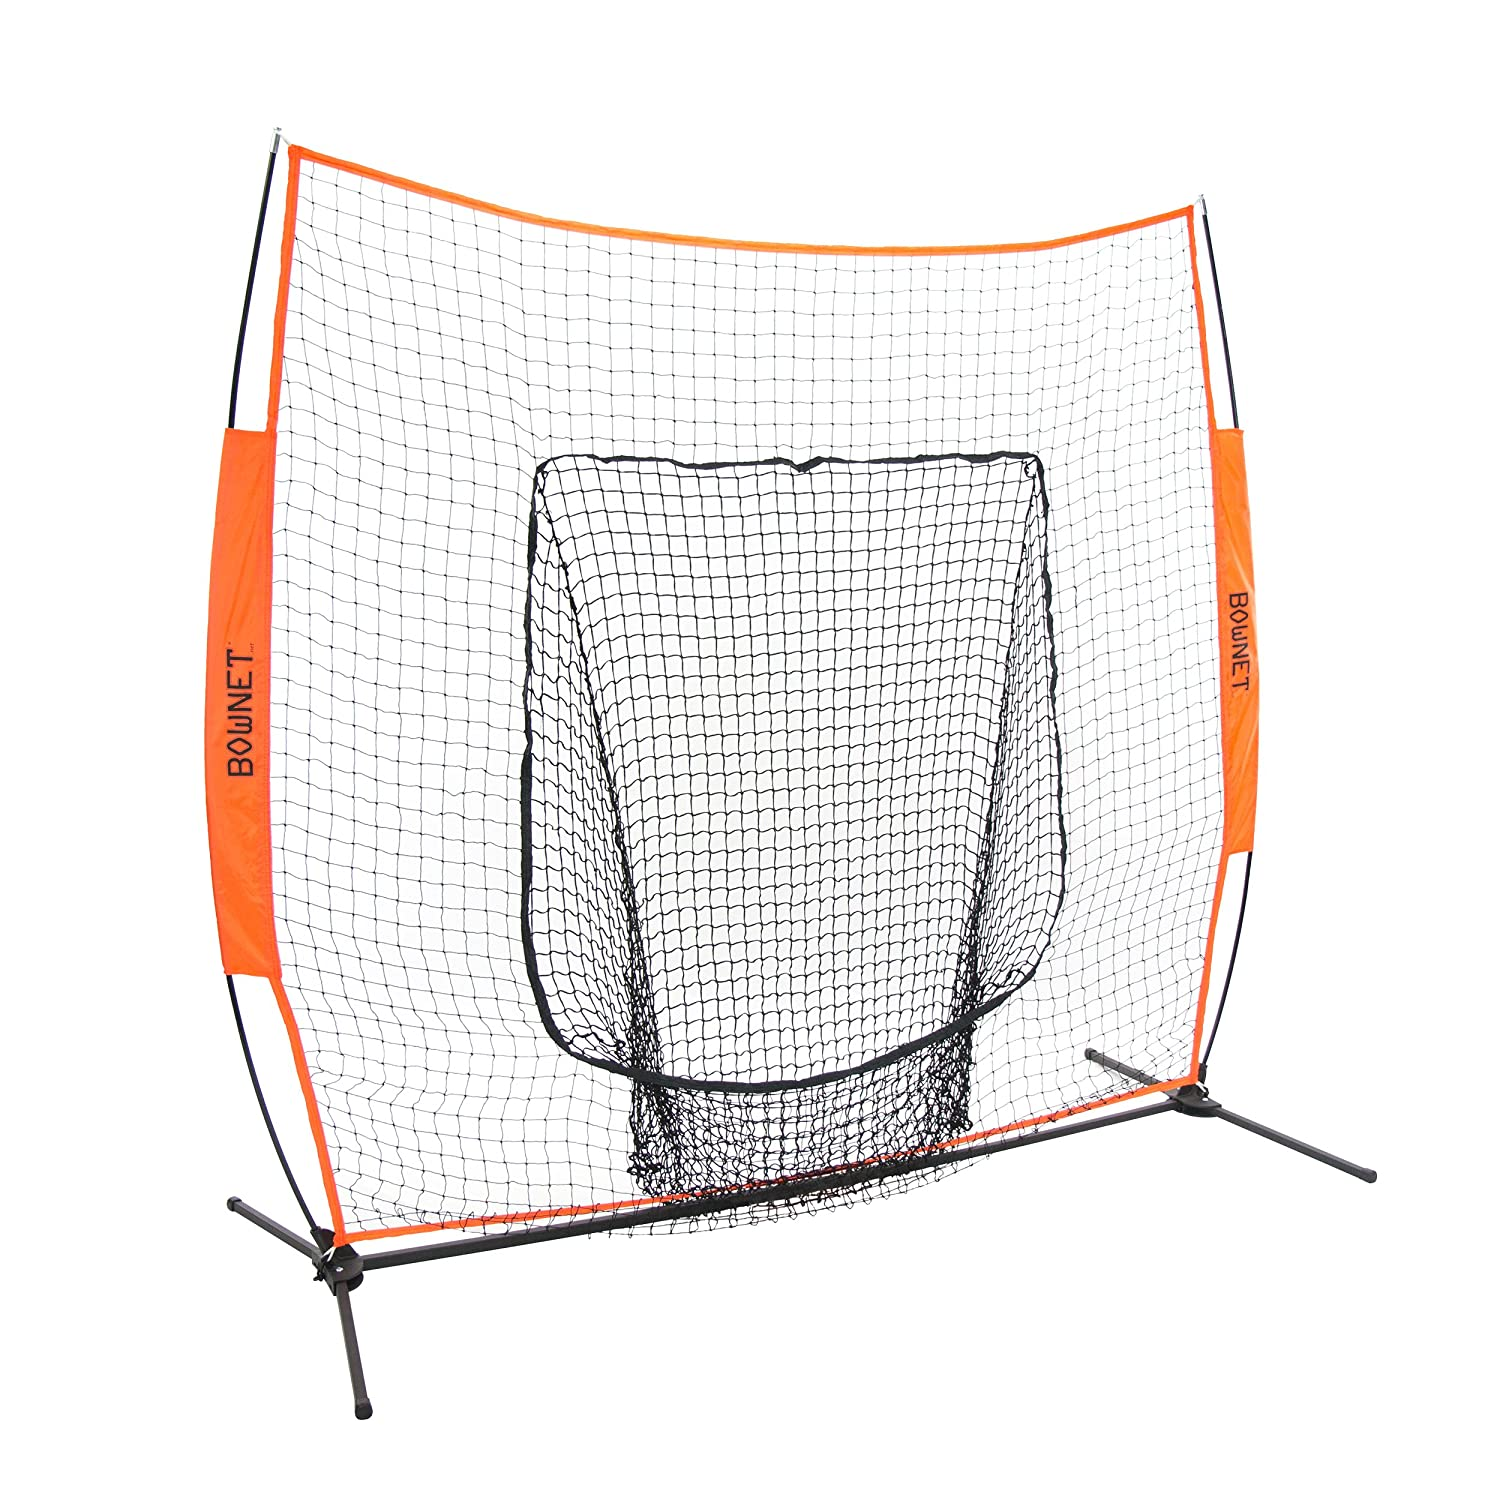 Bownet 7' x 7' Big Mouth Portable Sock Net For Baseball